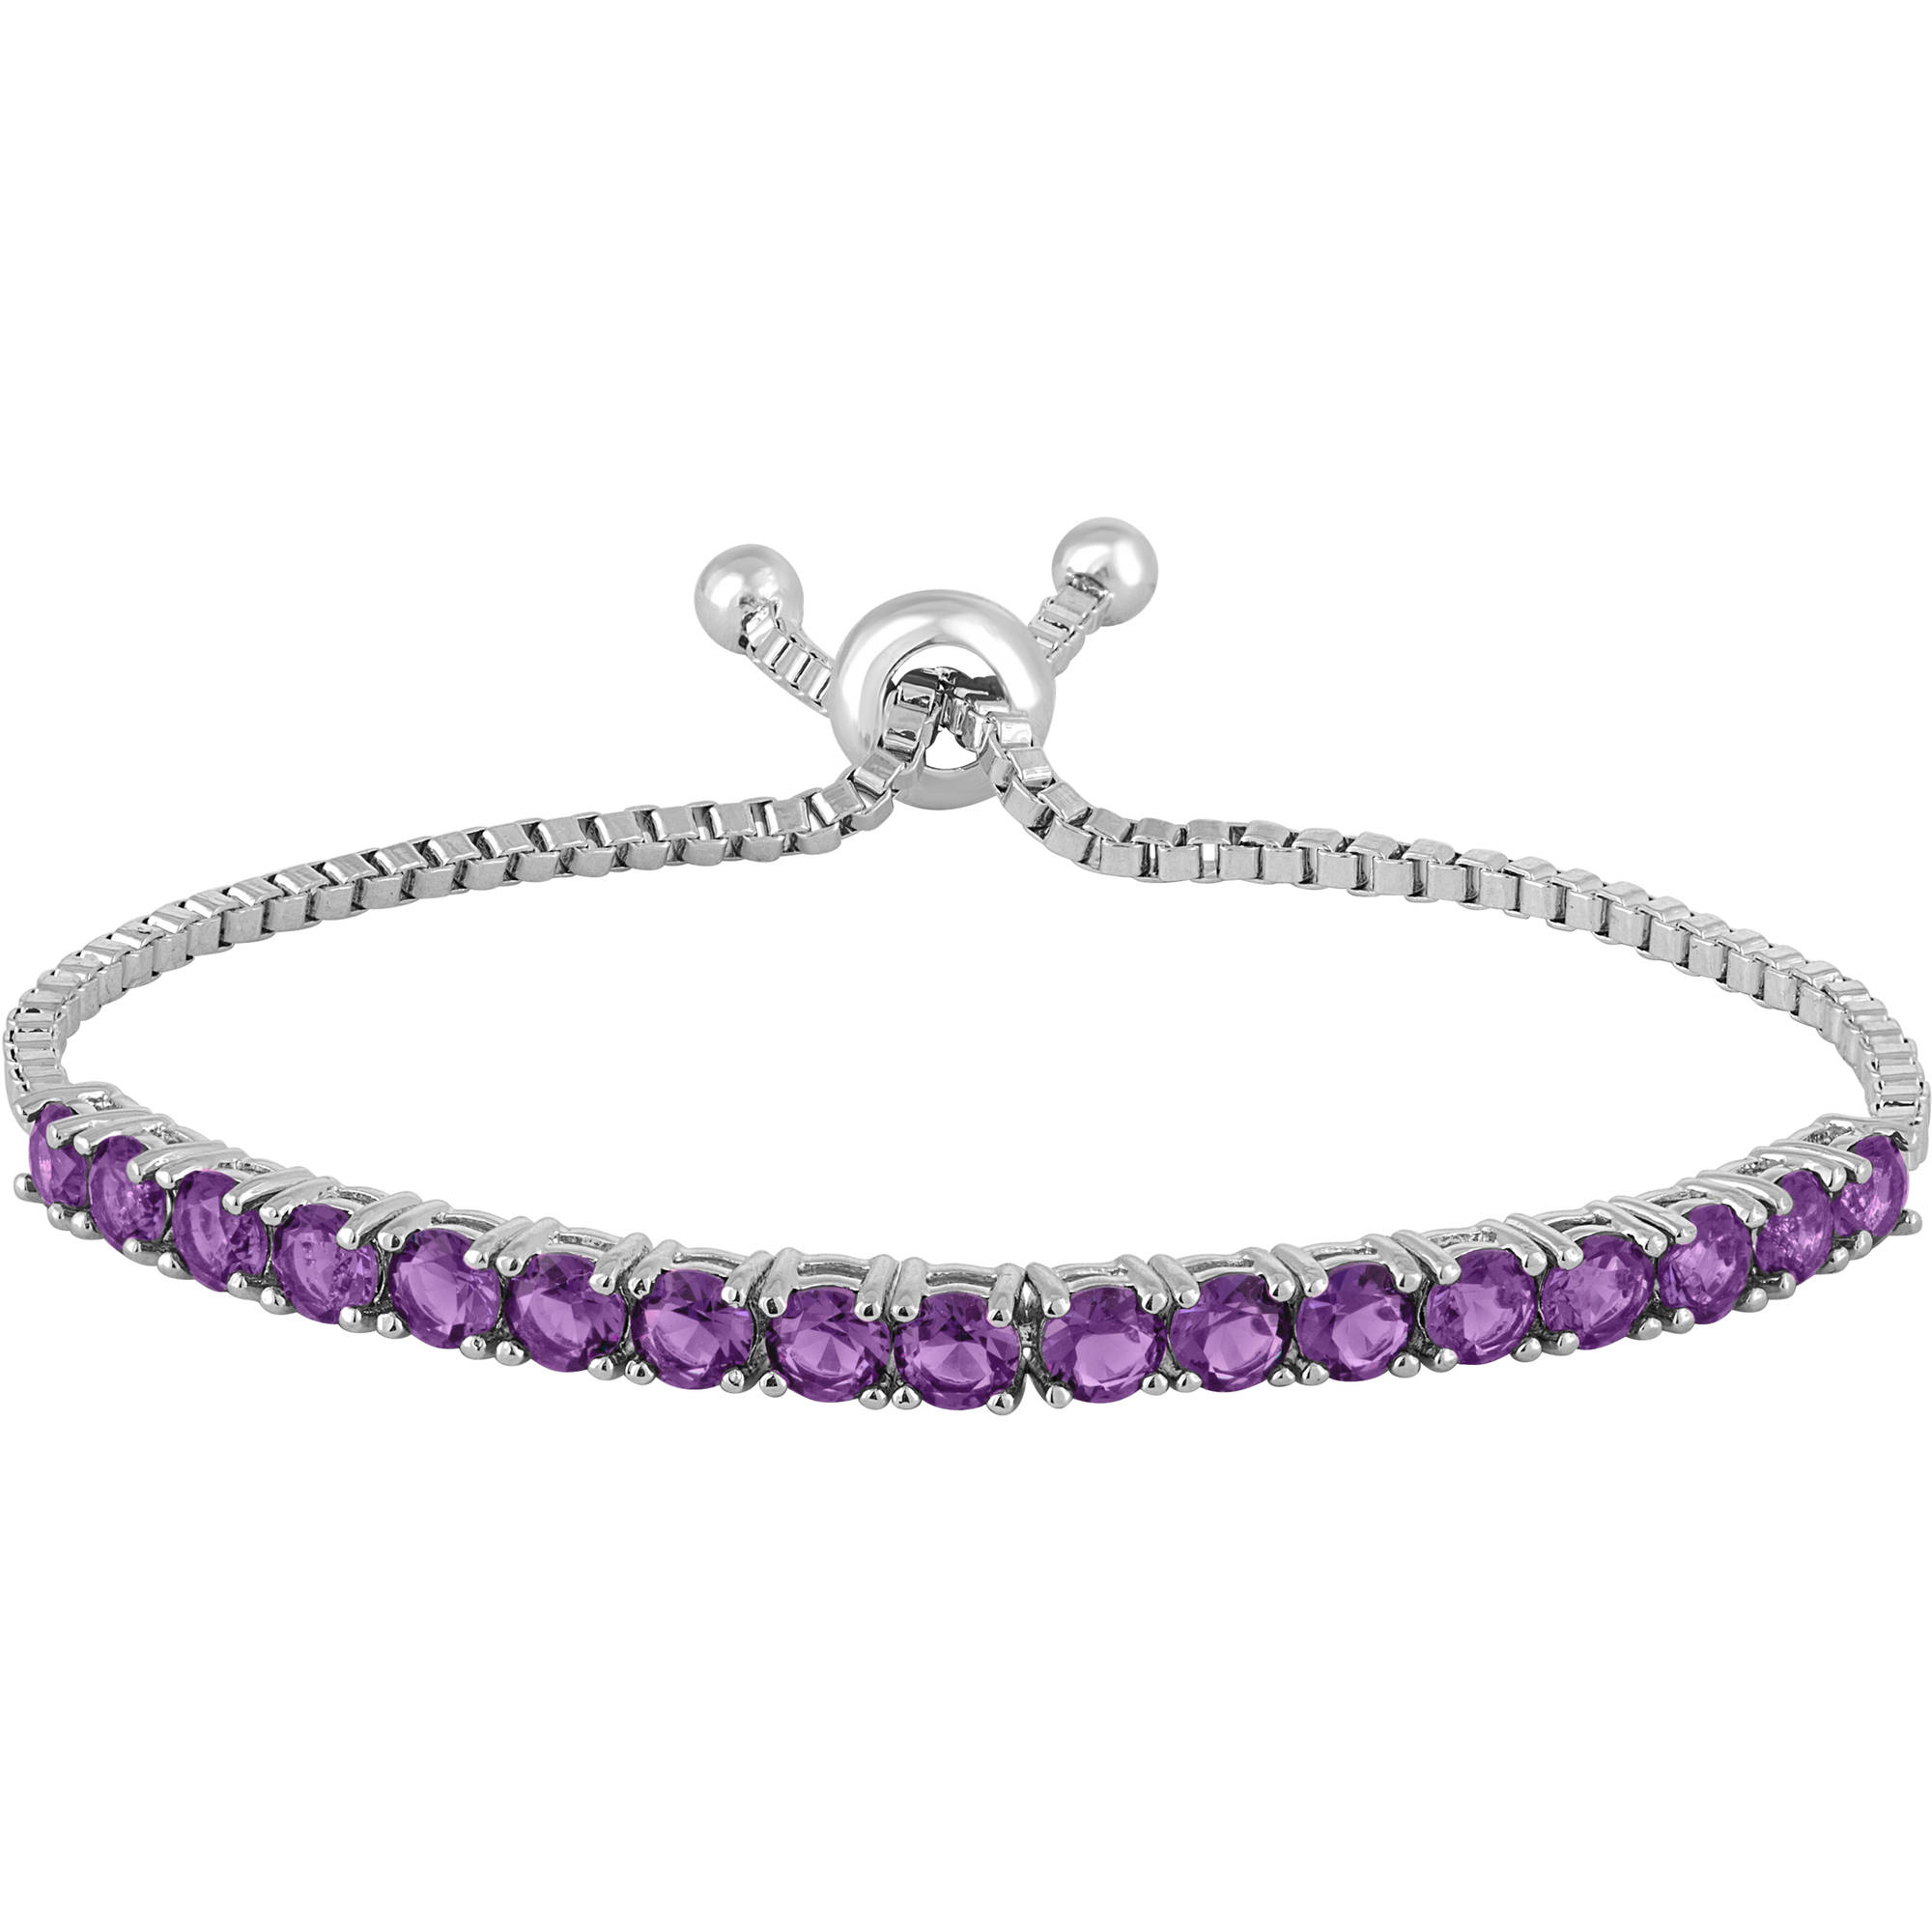 Gemspirations Sterling Silver Plated Simulated Amethyst with CZ Accents Adjustable Bolo Bracelet